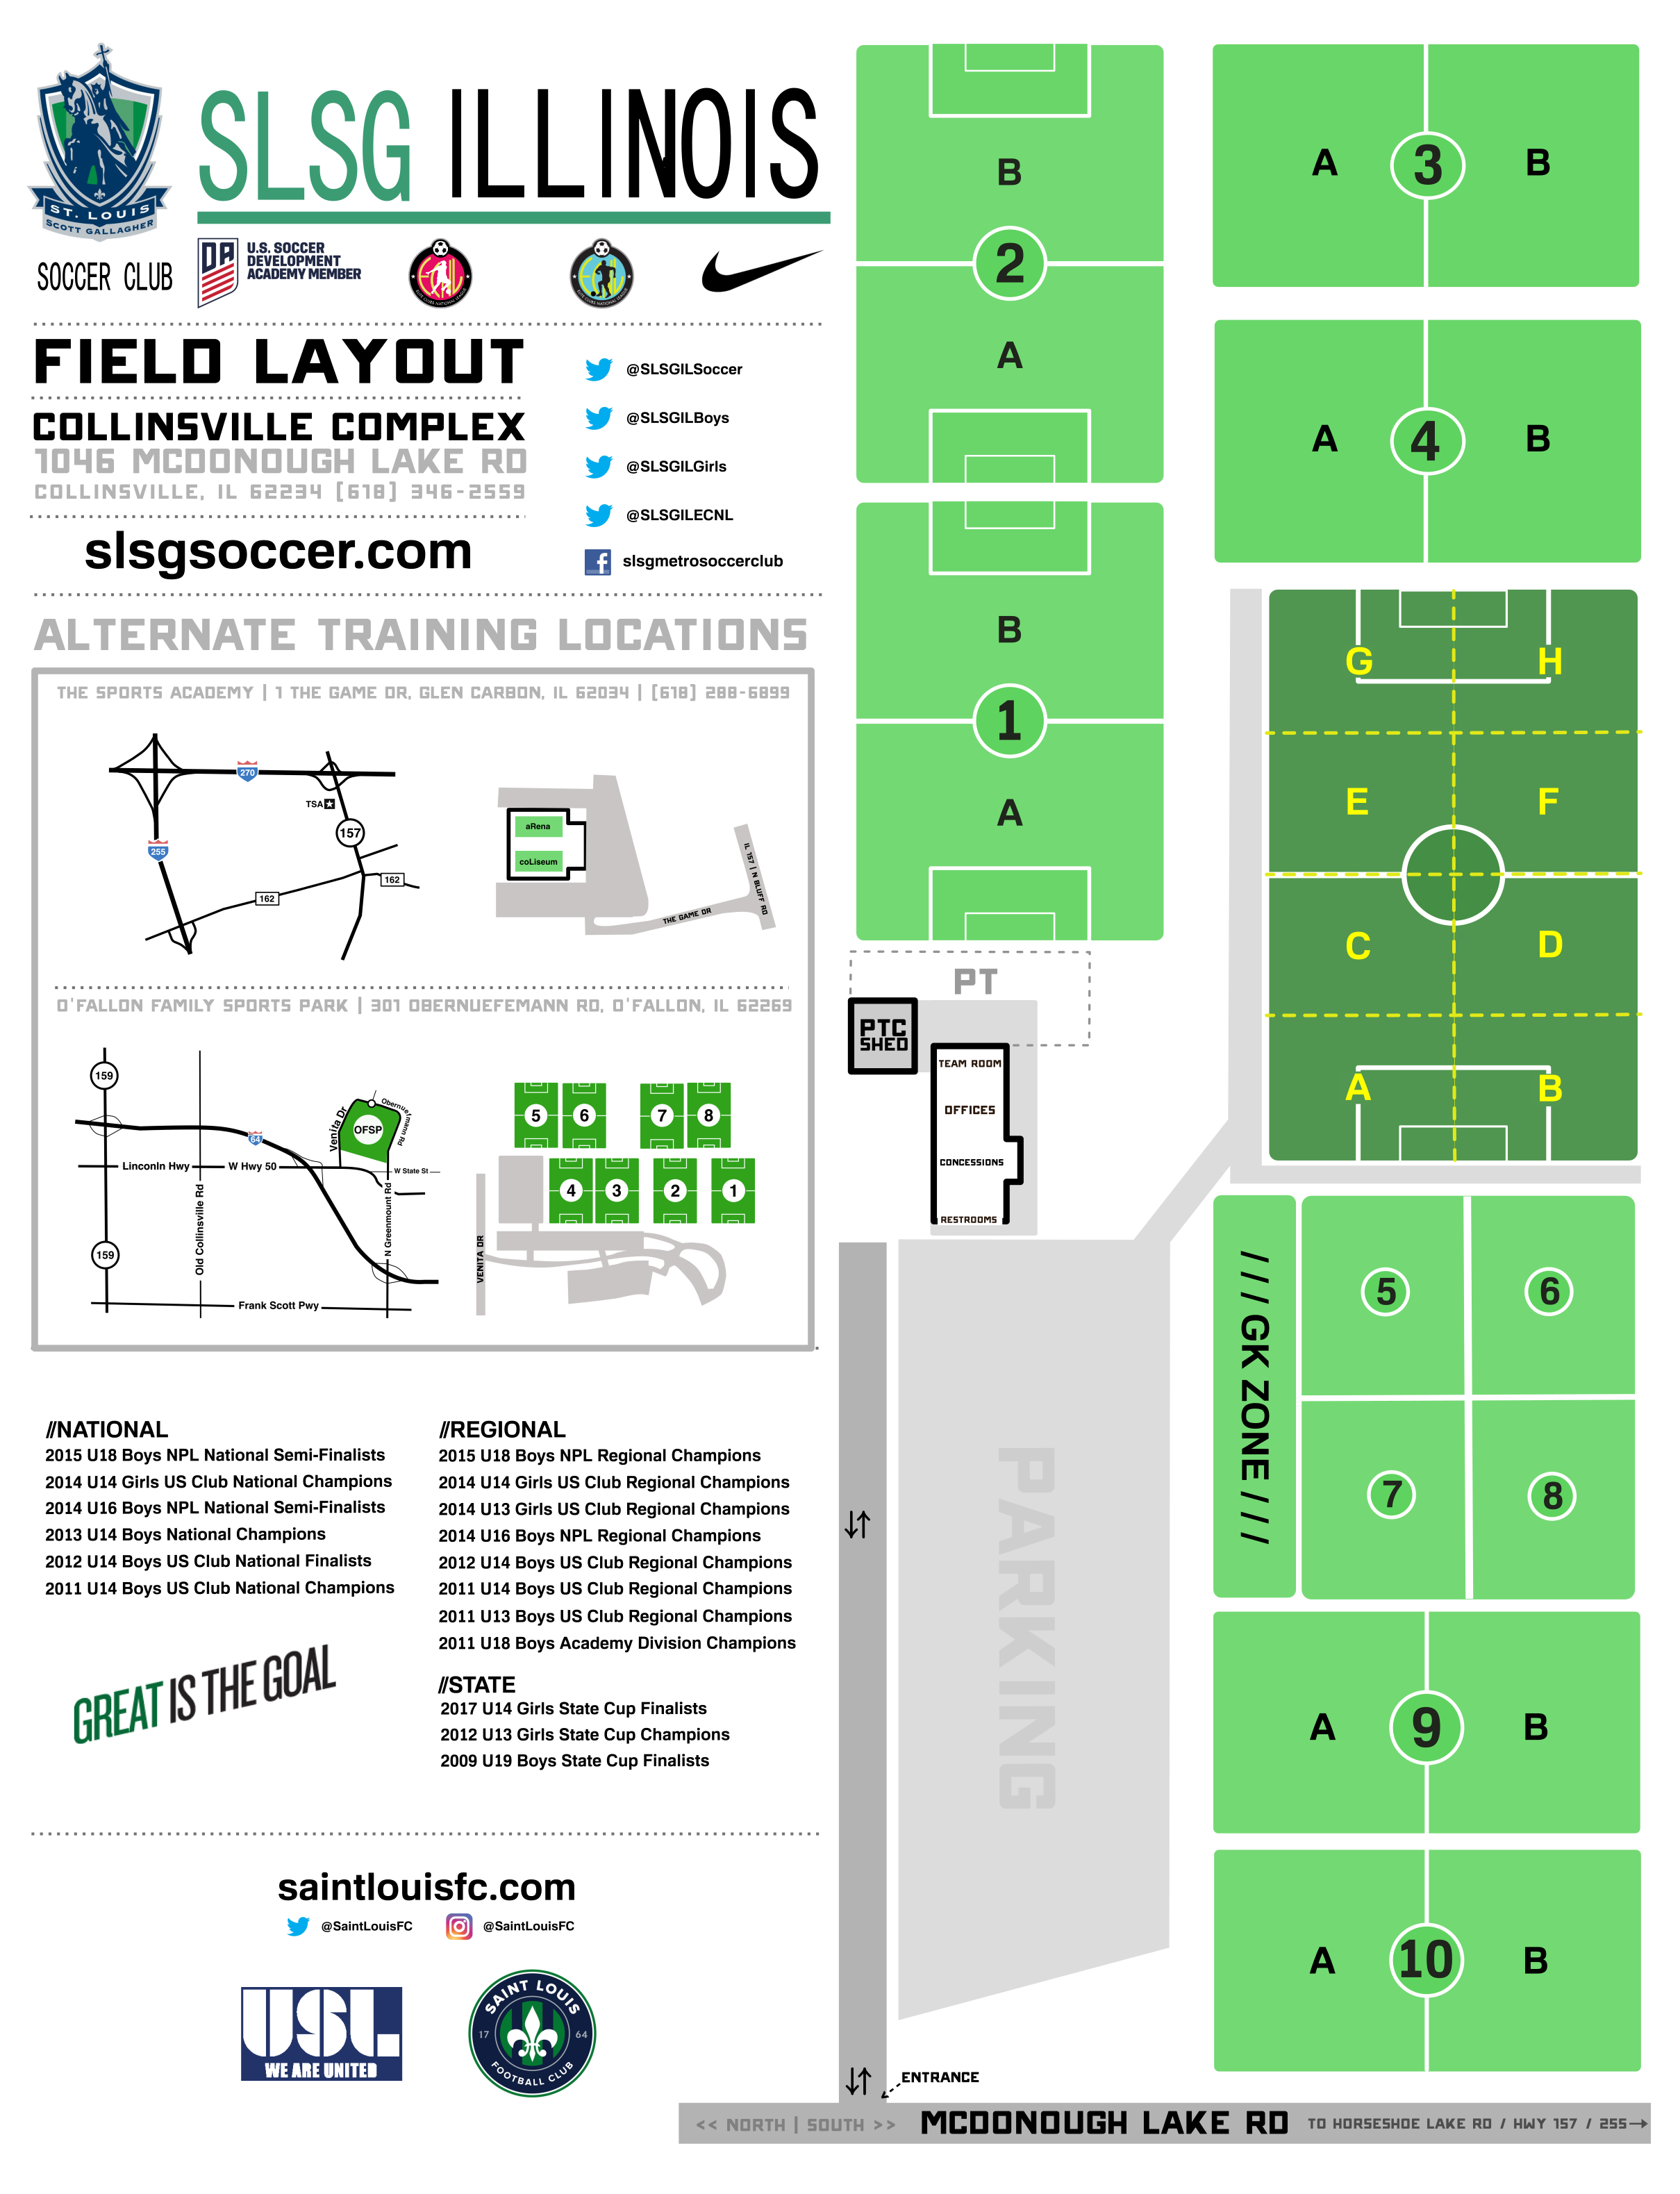 St. Louis Scott Gallagher Soccer Club | SLSG Field Map on salt lake city on us map, portland on us map, kalamazoo on us map, anchorage on us map, san francisco on us map, jackson on us map, chicago on us map, manchester on us map, lincoln on us map, madison on us map, boston on us map, cleveland on us map, durham on us map, milwaukee on us map, sacramento on us map, oakland on us map, little rock on us map, new orleans on us map, loudoun county on us map, independence on us map,